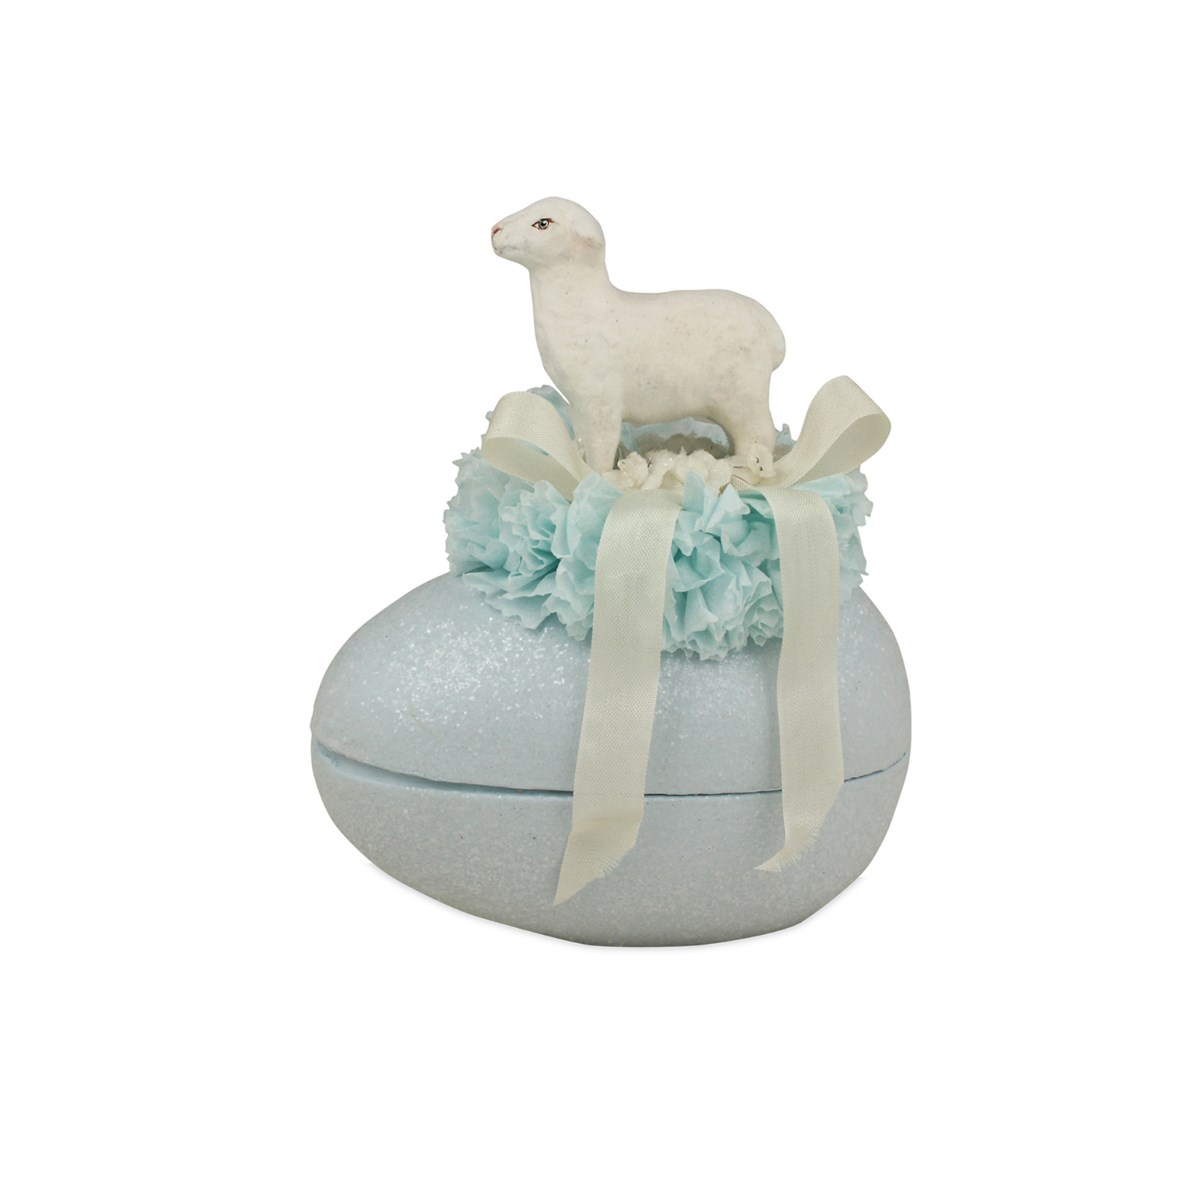 Lamb on Egg Container